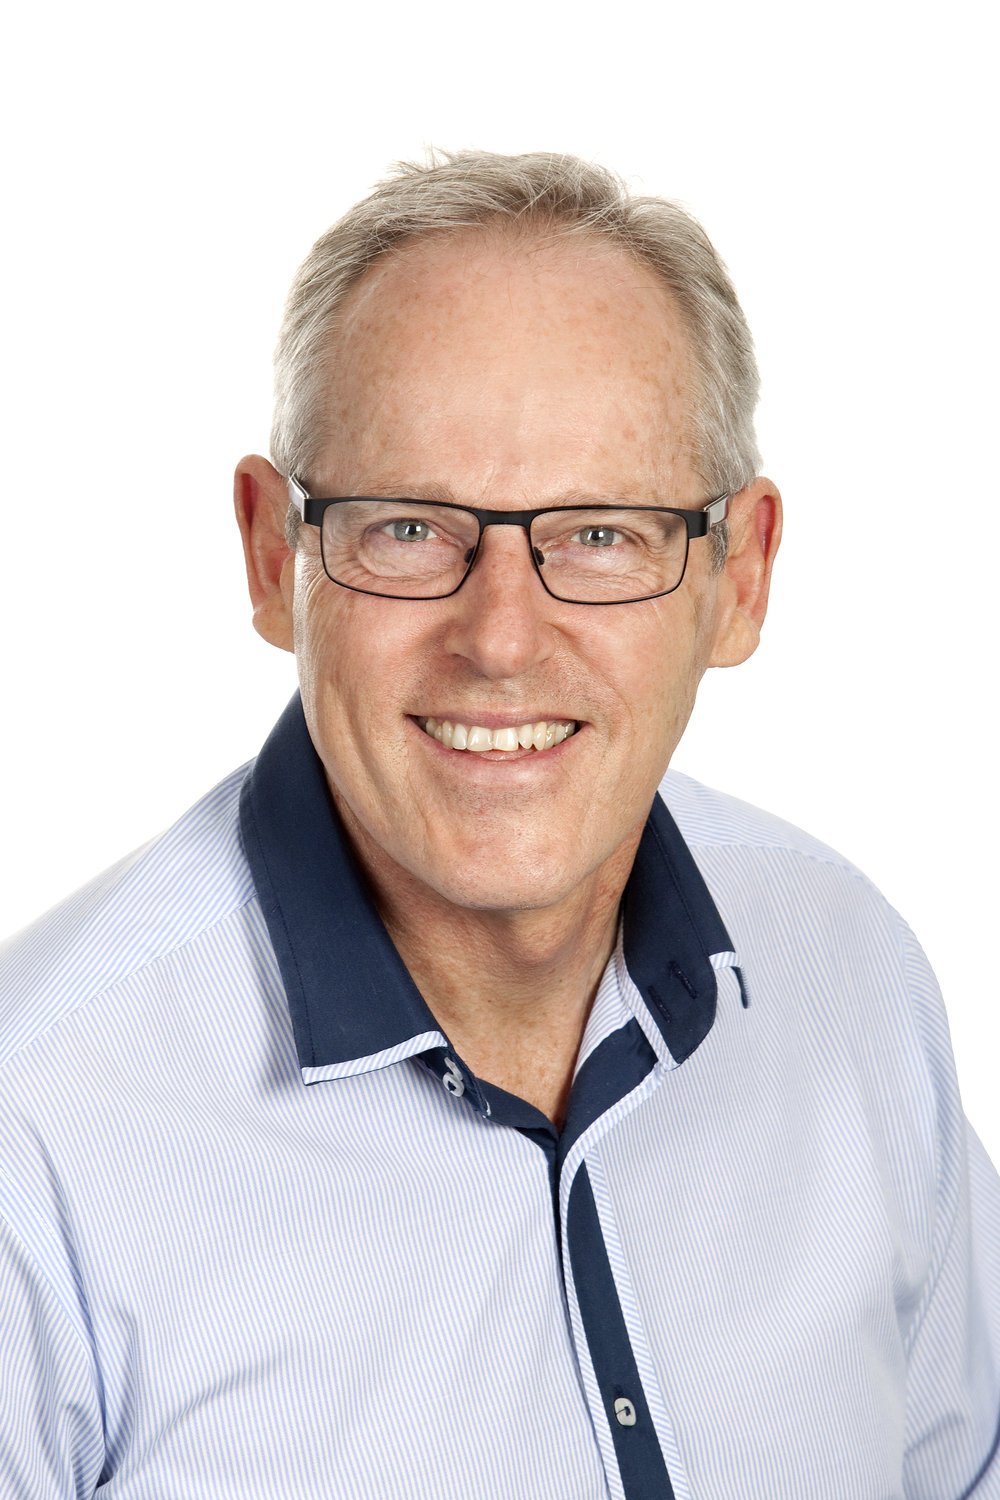 John Drury - Presenter, Trainer, Facilitator, Mentor and Author